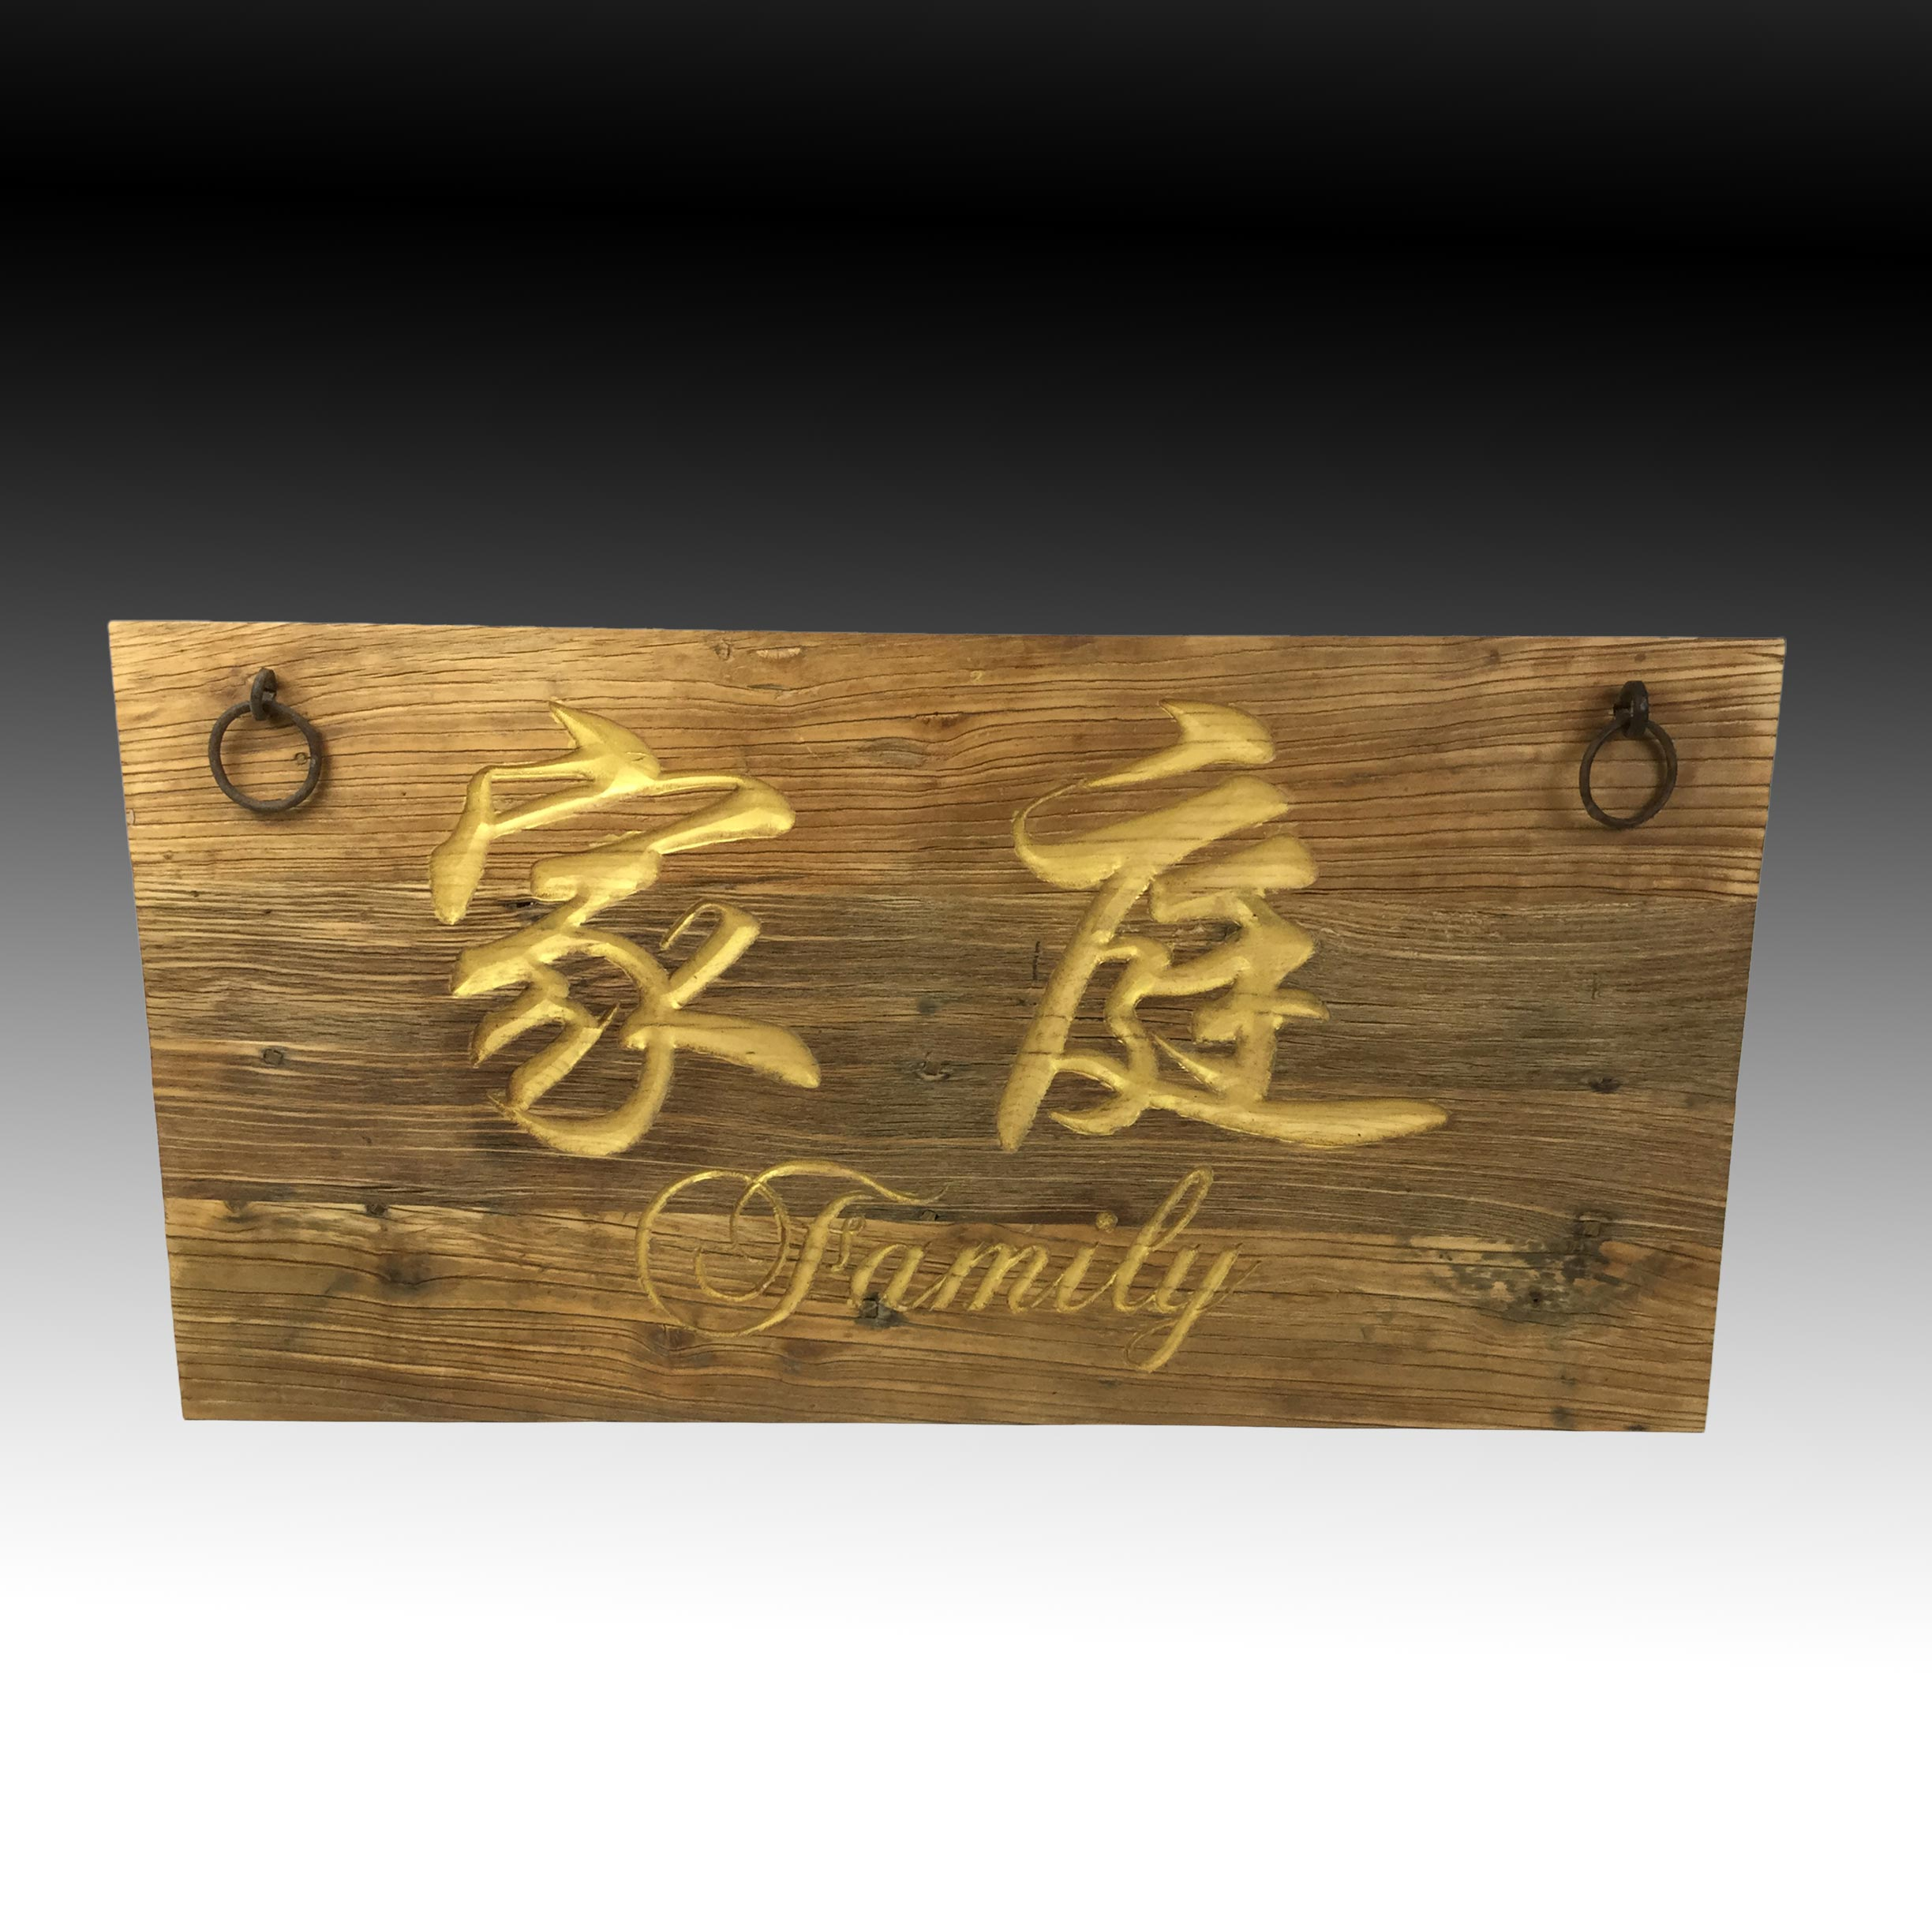 Family wooden signage